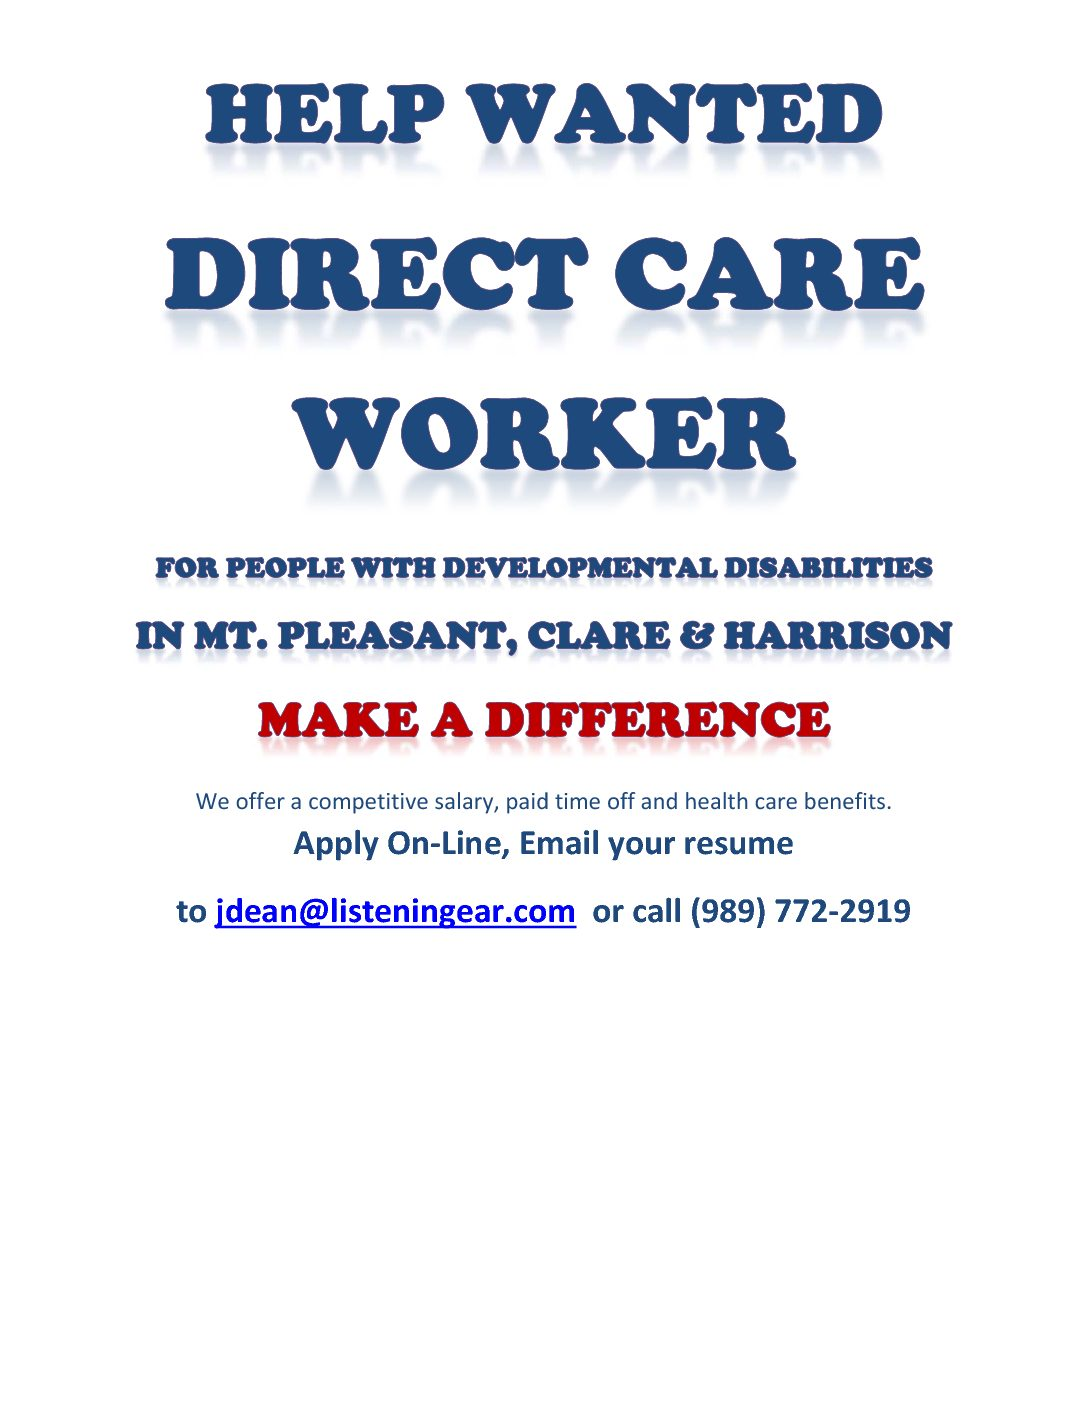 Listening ear where help begins and dreams are possible direct care workers needed fandeluxe Images